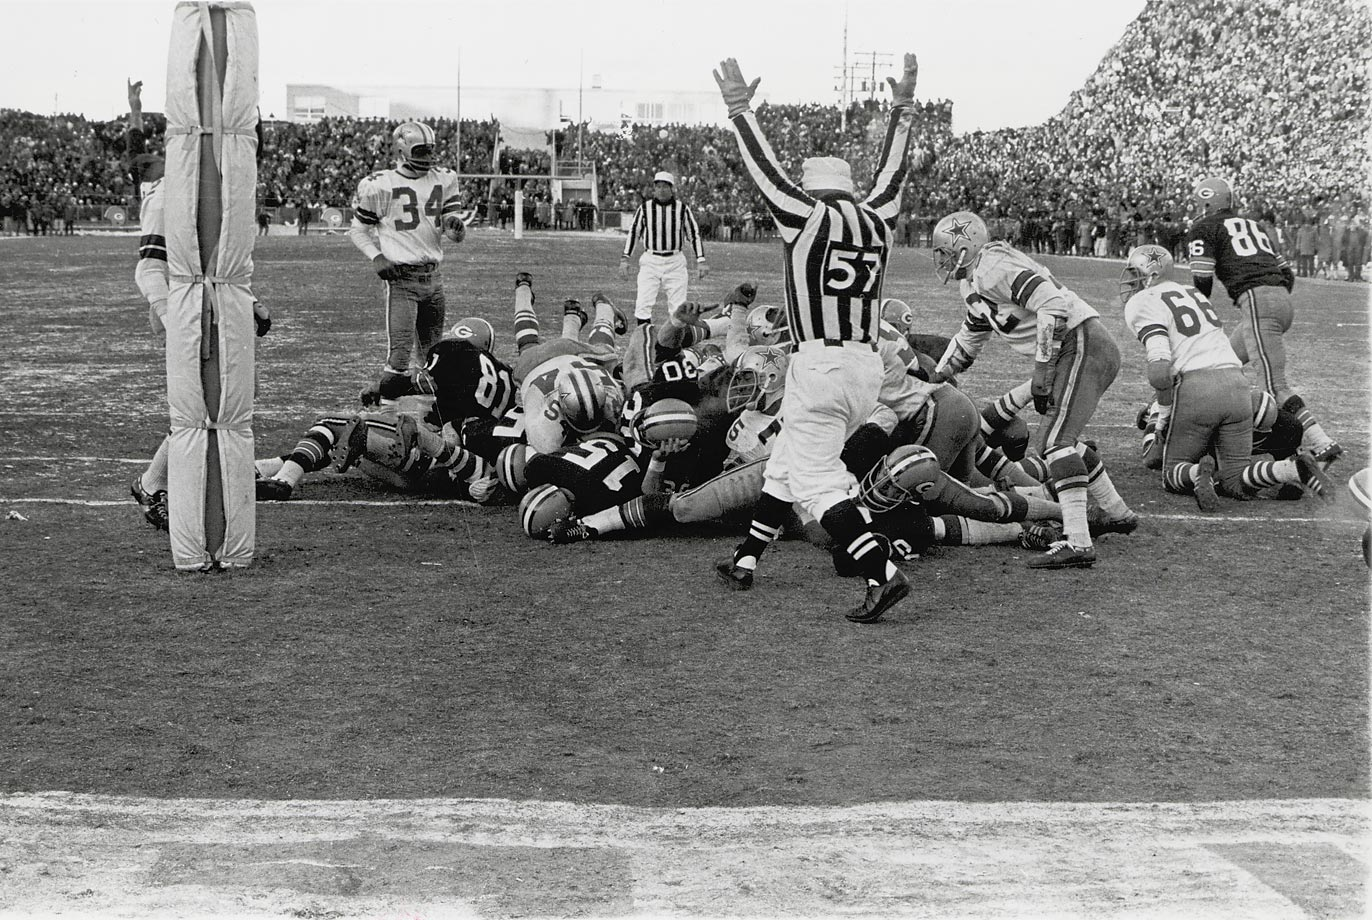 "As quarterback, Starr called all the team's plays, most famously a QB sneak in the Ice Bowl against the Cowboys. Starr called ""35 Wedge,"" but instead of handing the ball off to the halfback, Starr kept it himself. When Starr first suggested the play to Lombardi, the coach remarked, ""Well, run it, and let's get the hell out of here."" The Packers won, 21-17. (Text credit: Shannon Carroll)"